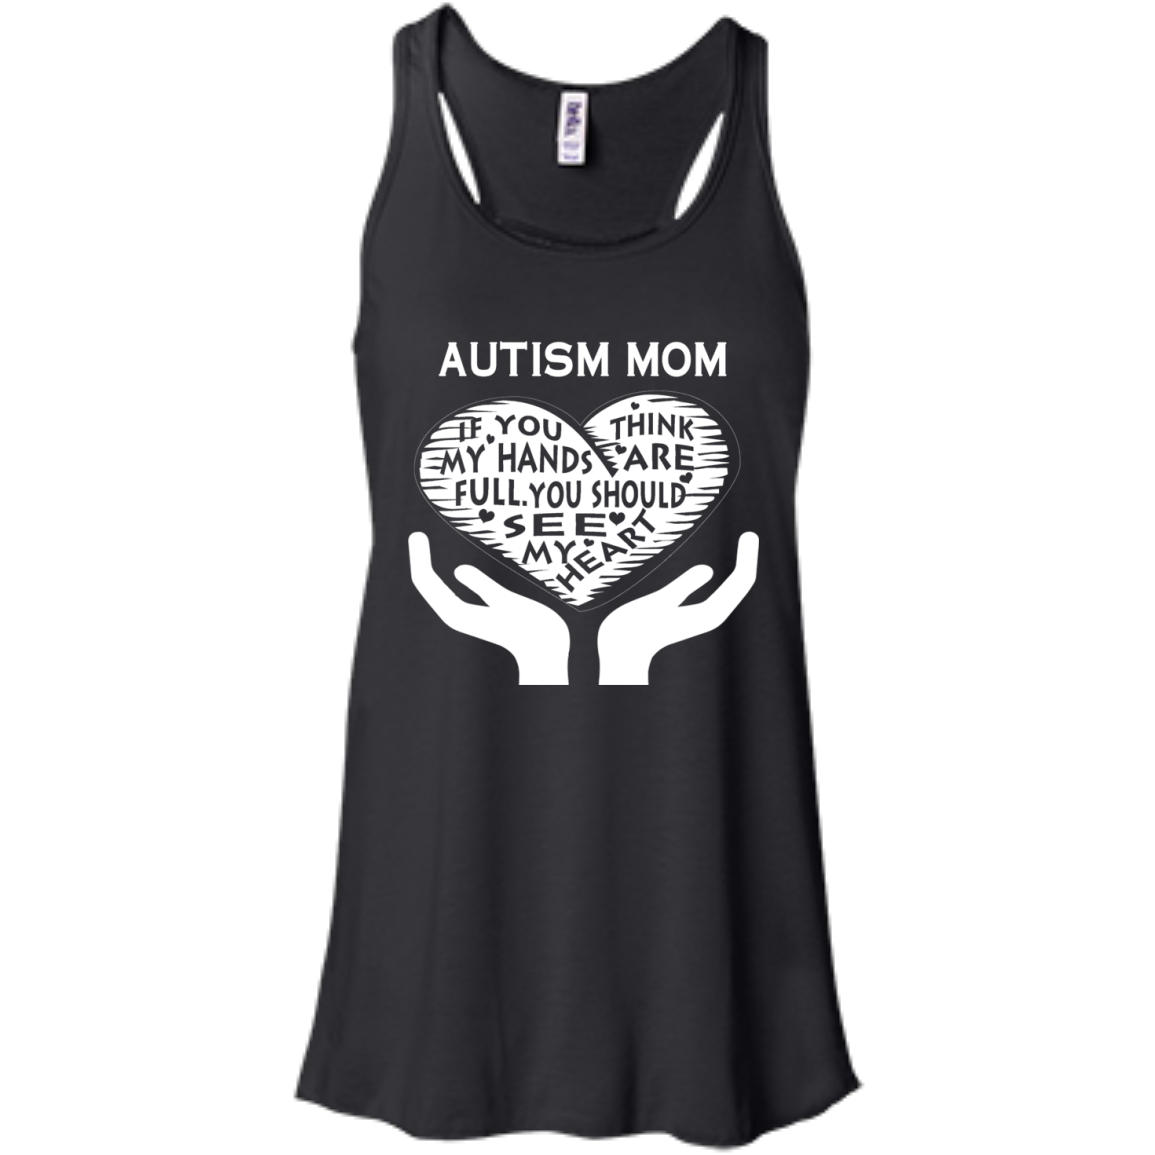 AUTISM Awareness MOM T-SHIRTS HOODIES If You Think My Hands Are Full - The Sun Cat